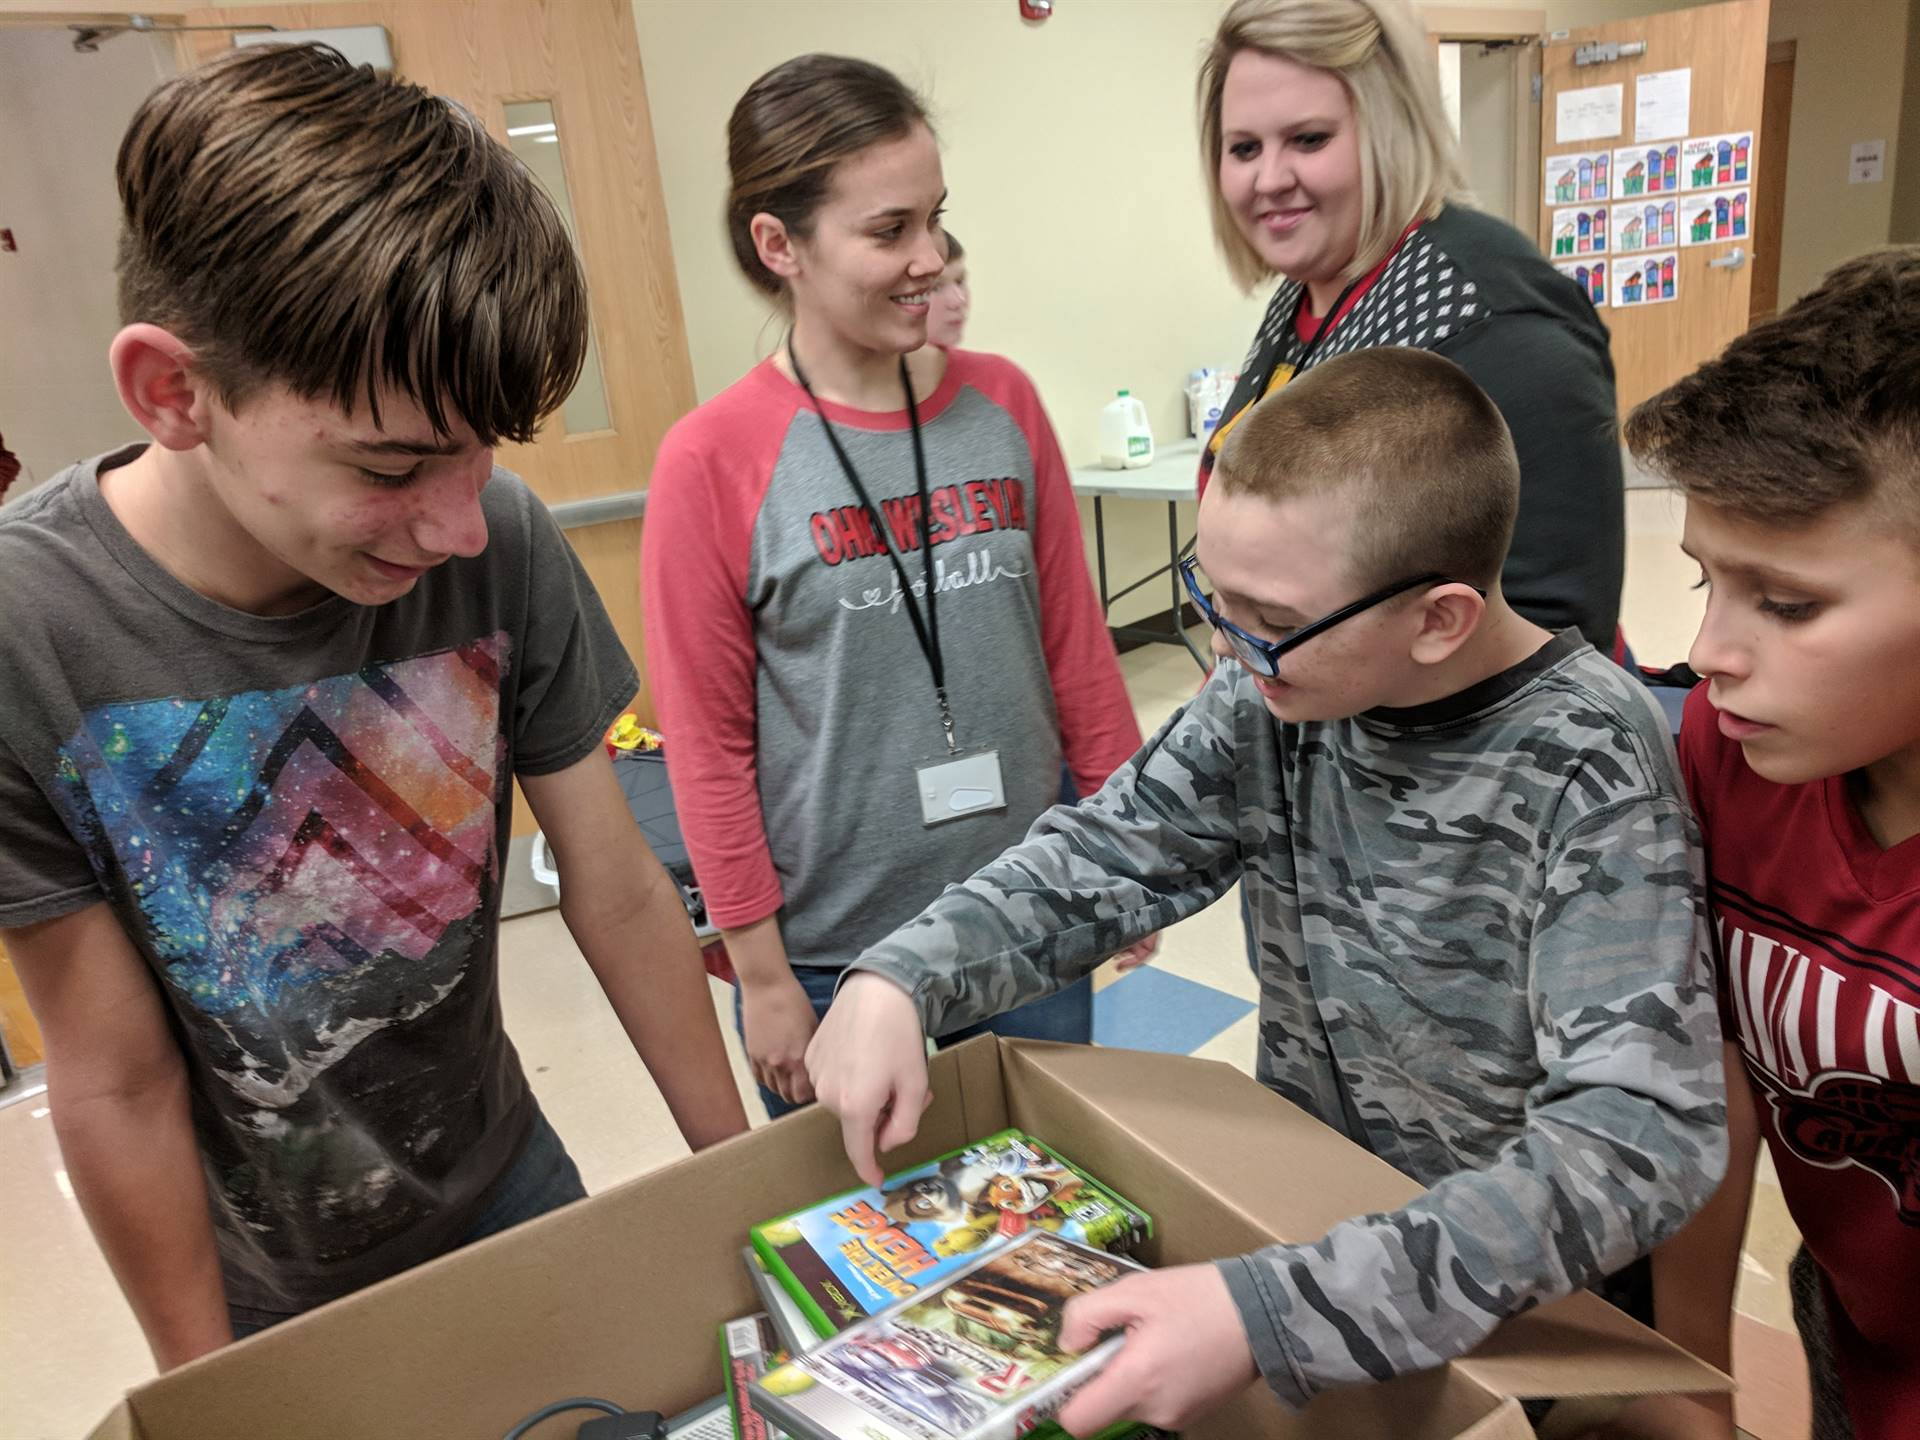 Luke generously gave away his Xbox and games!